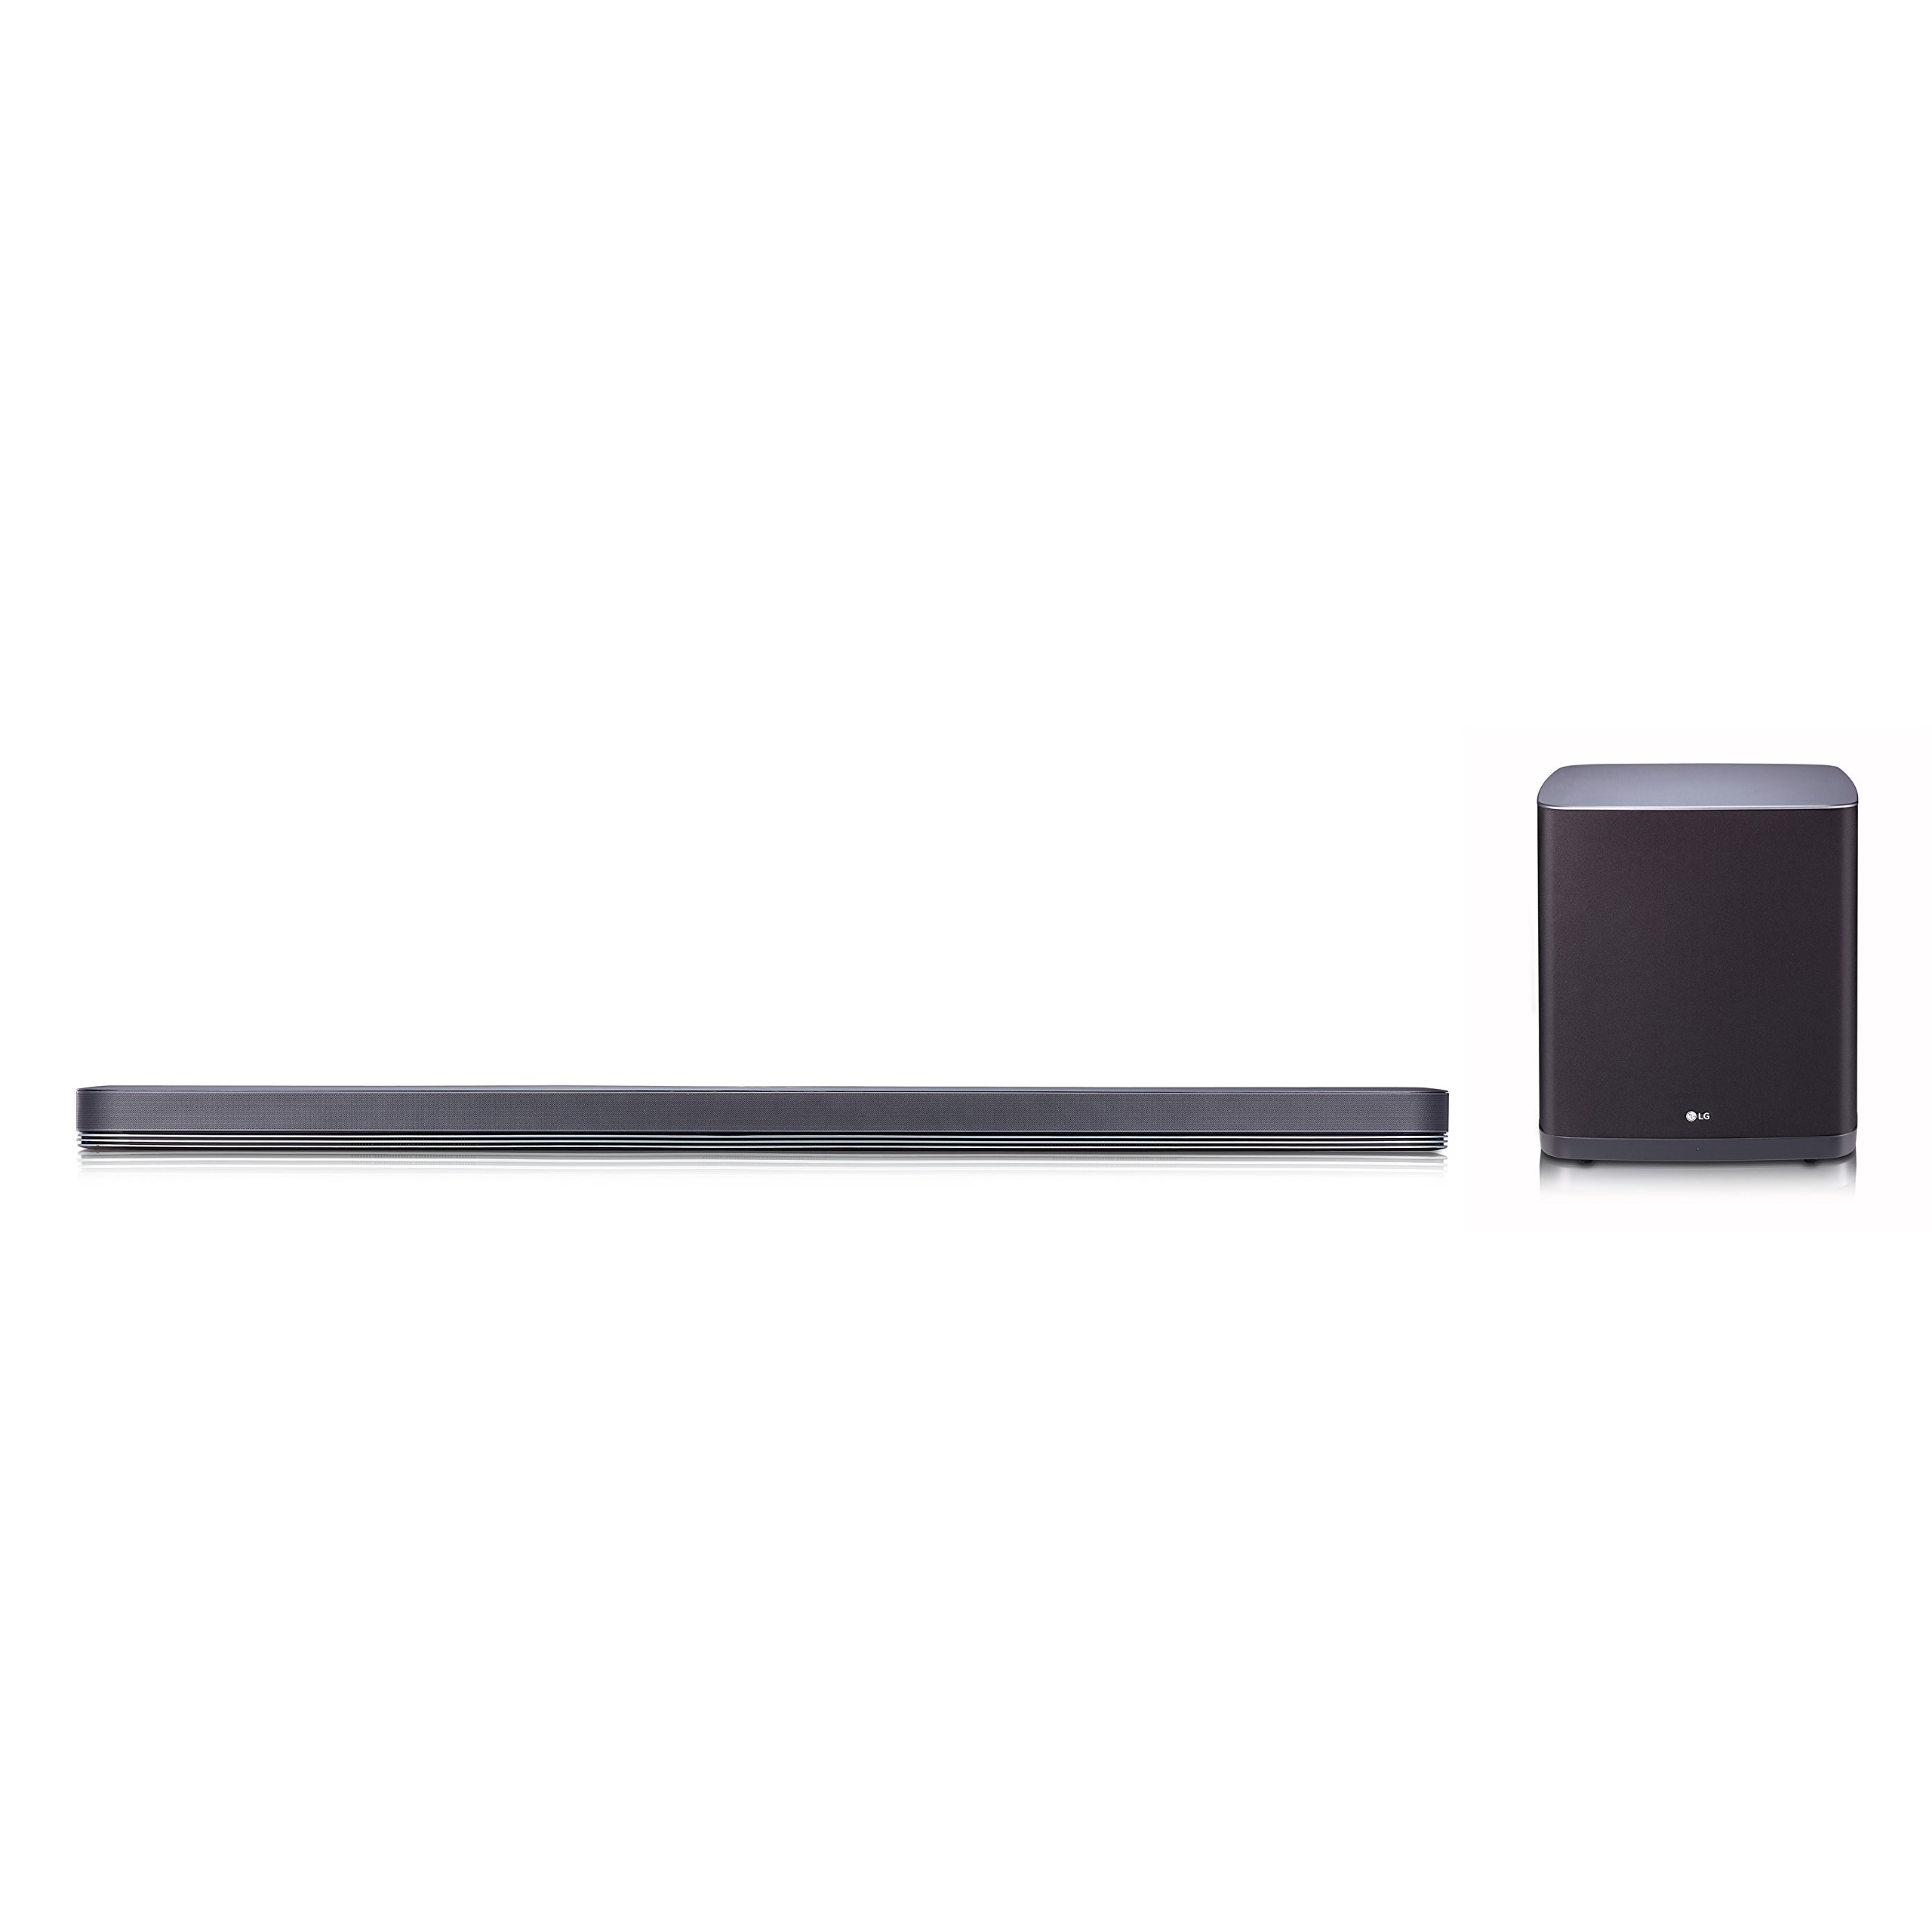 LG Electronics SJ9 5.1.2 Channel High Resolution Audio Sound Bar with Dolby Atmos (2017 Model) by LG